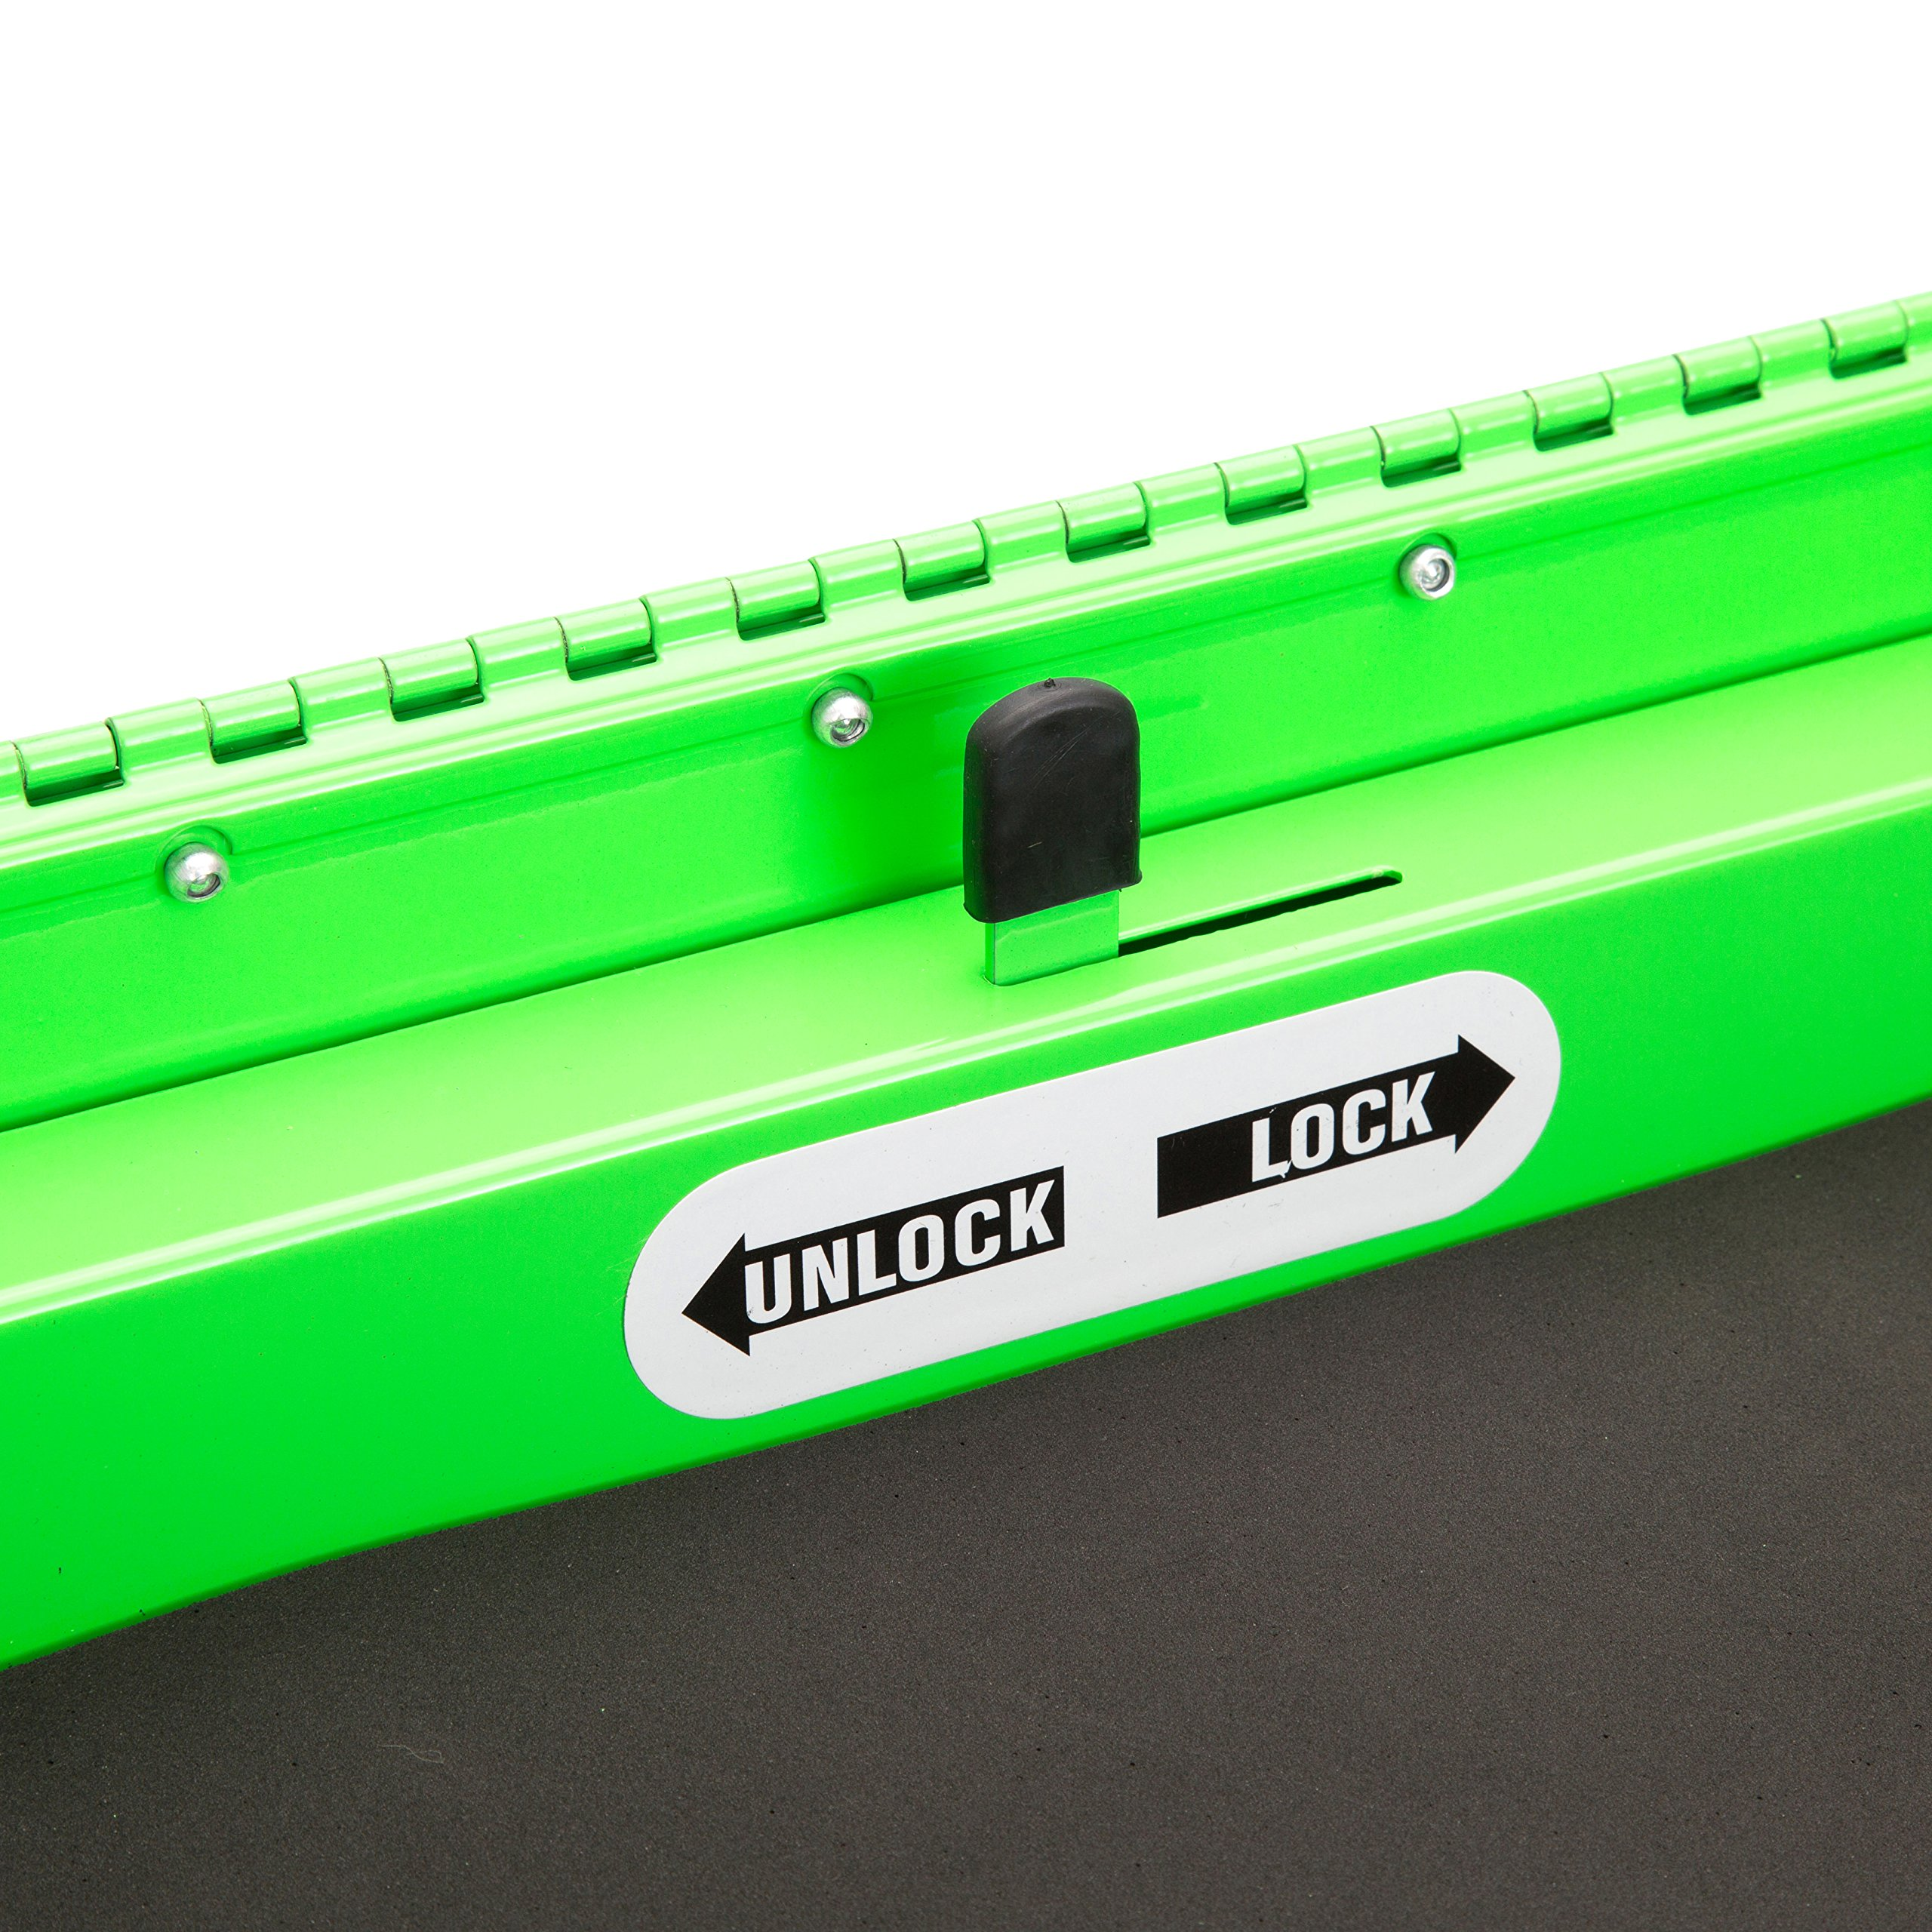 Professional Service Cart - 5 Drawer and 1 Tray (Green) by OEMTOOLS (Image #7)